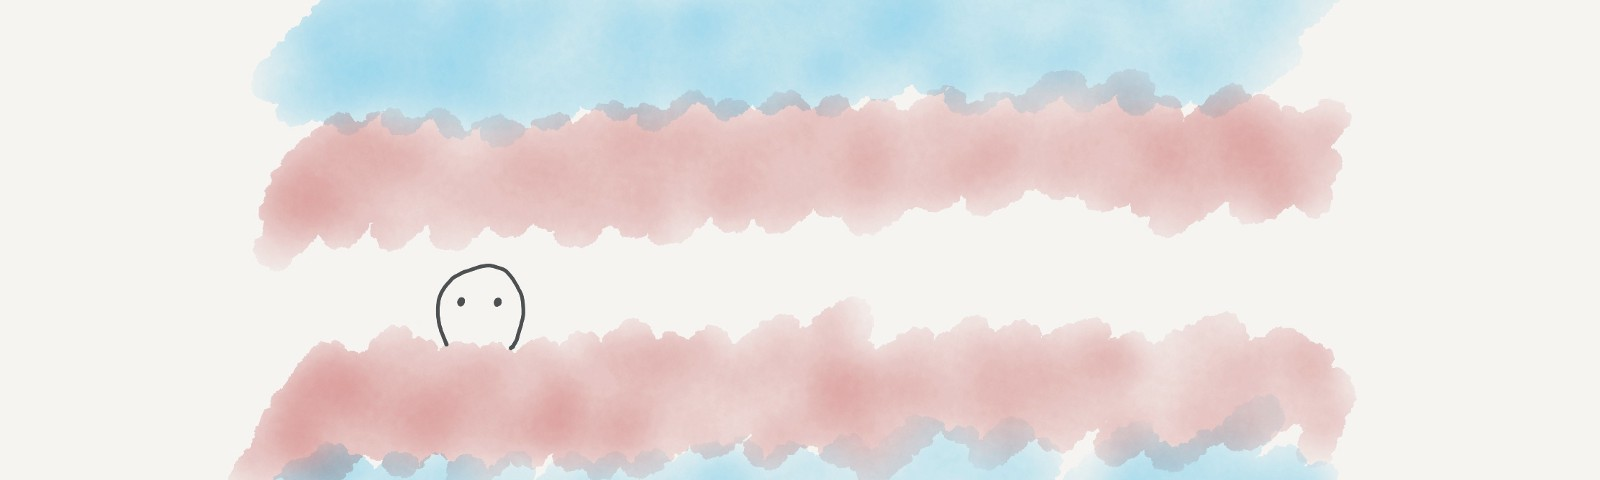 A fluffy trans pride flag with a stick figure person peeking out the center white area.